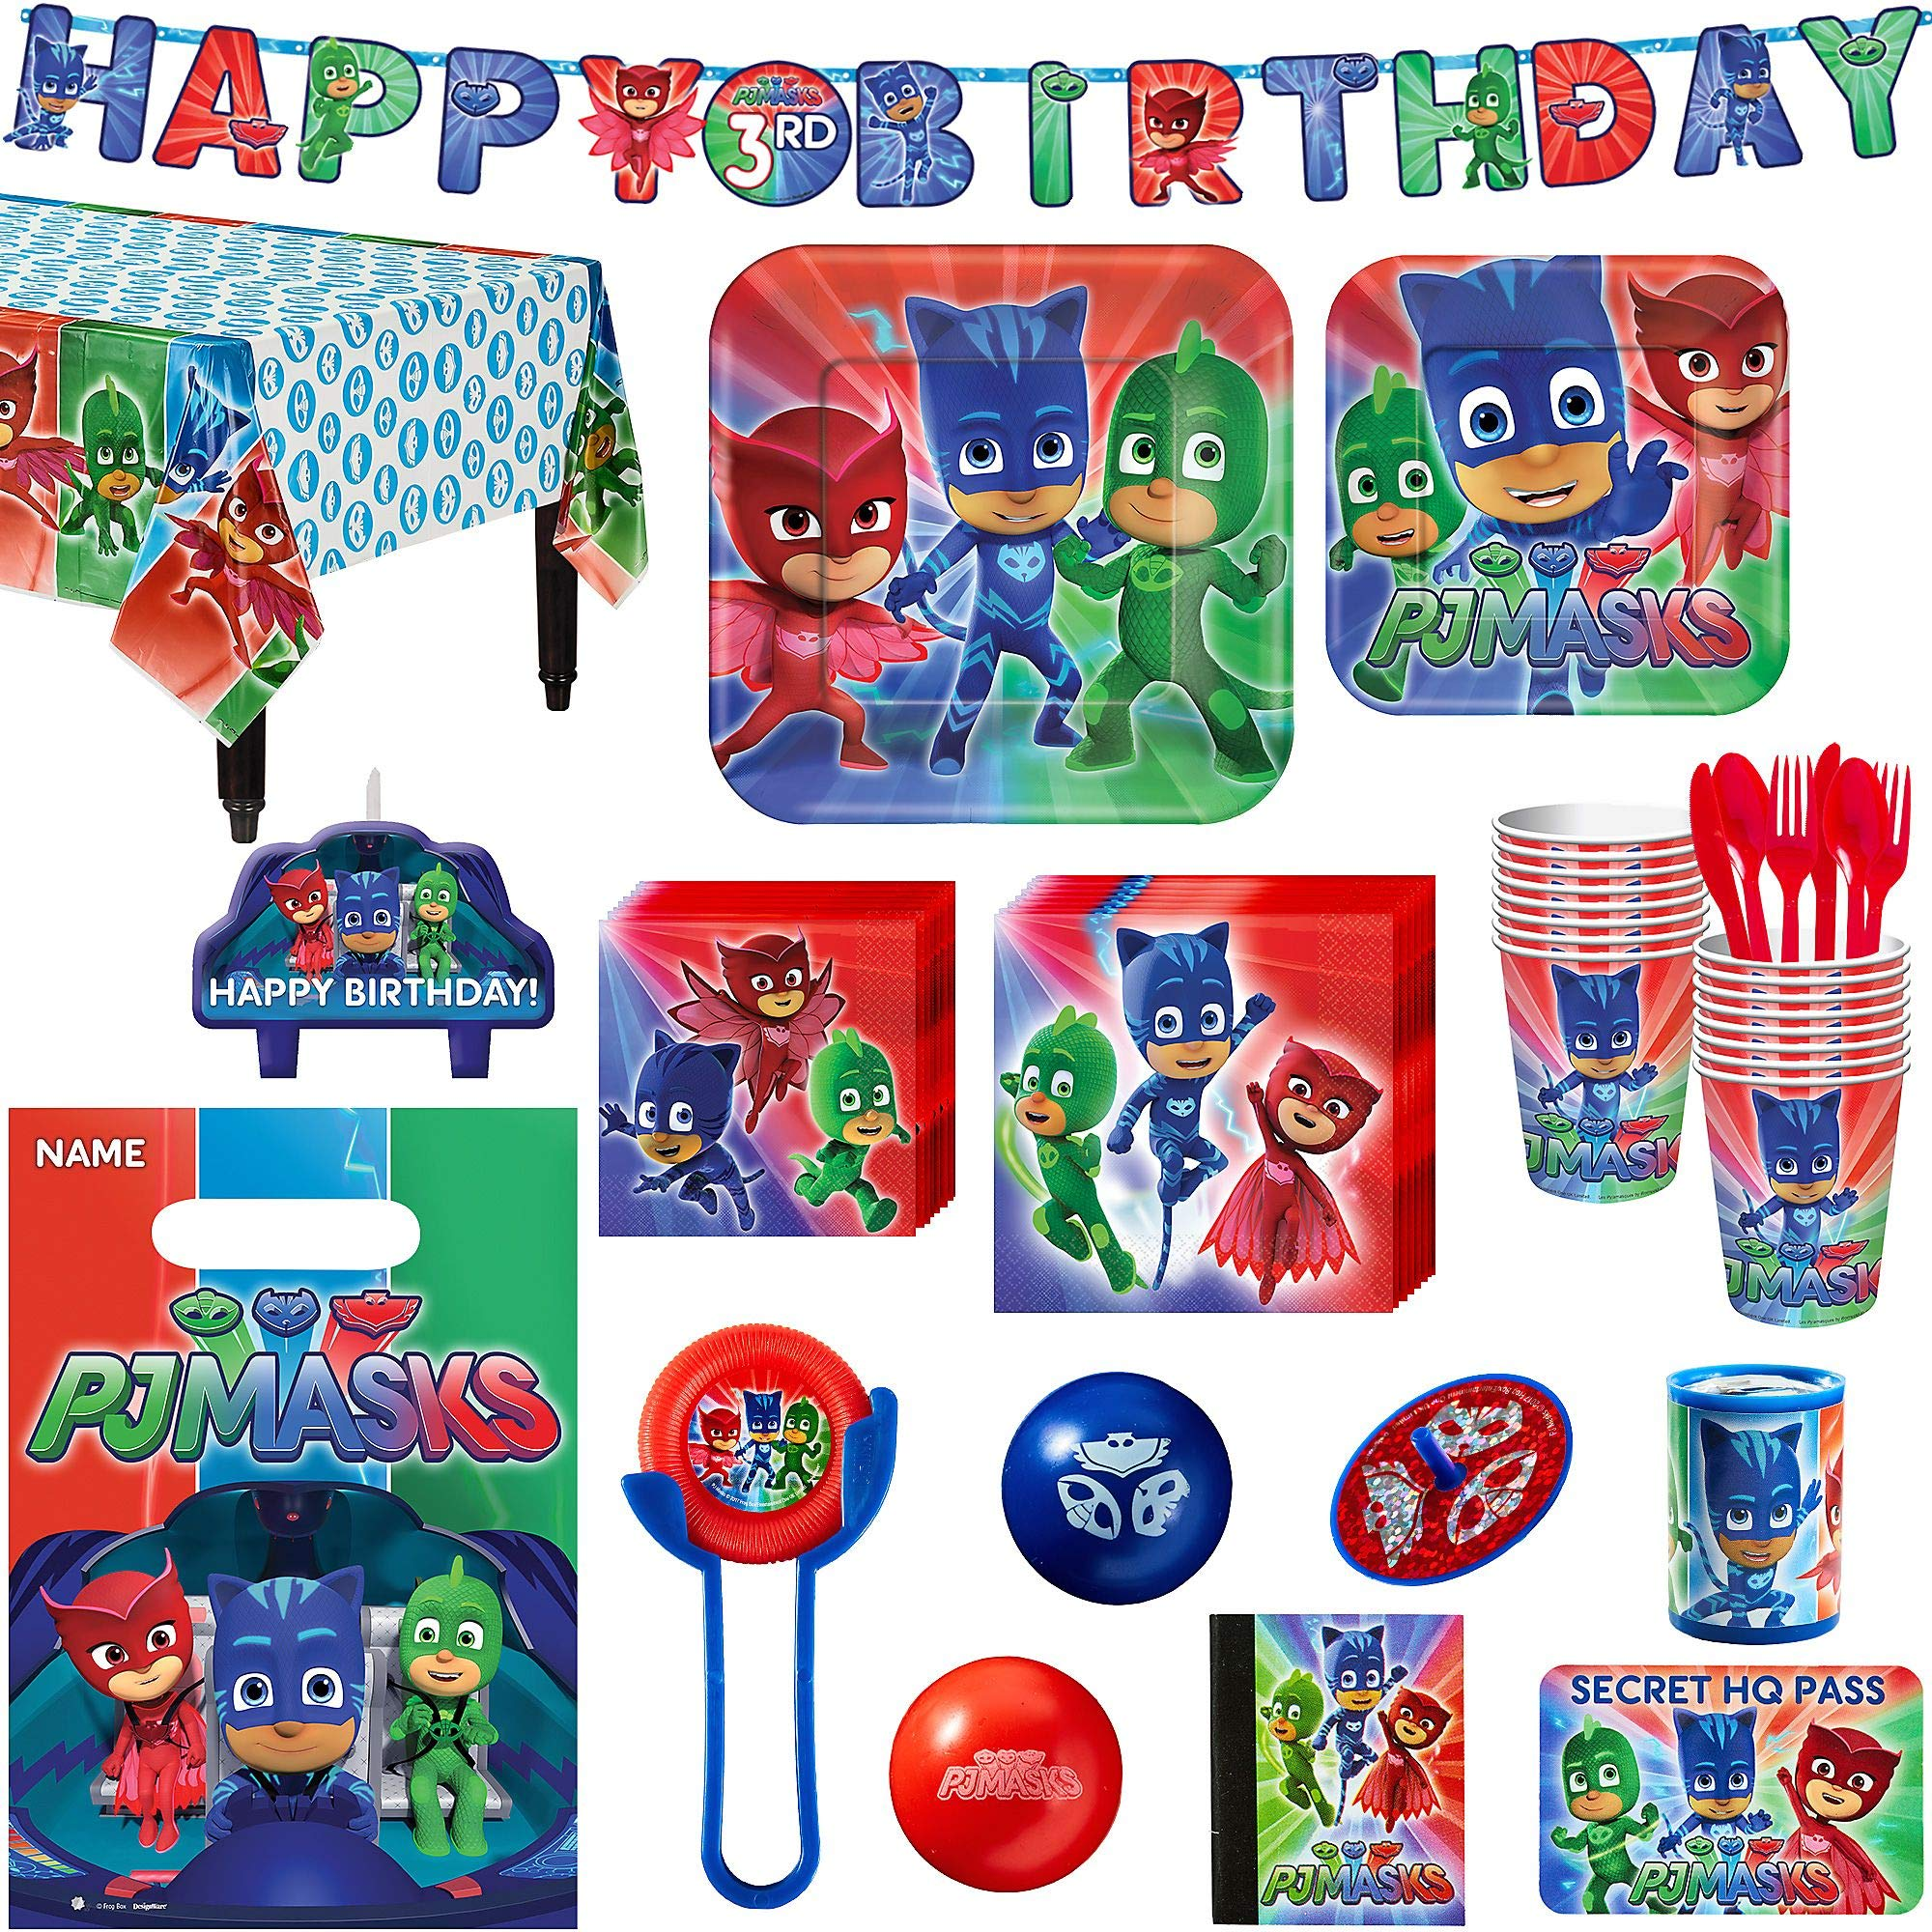 PJ Masks Birthday Party Kit, Includes Happy Birthday Banner and Party Favor Pack, Serves 16, by Party City